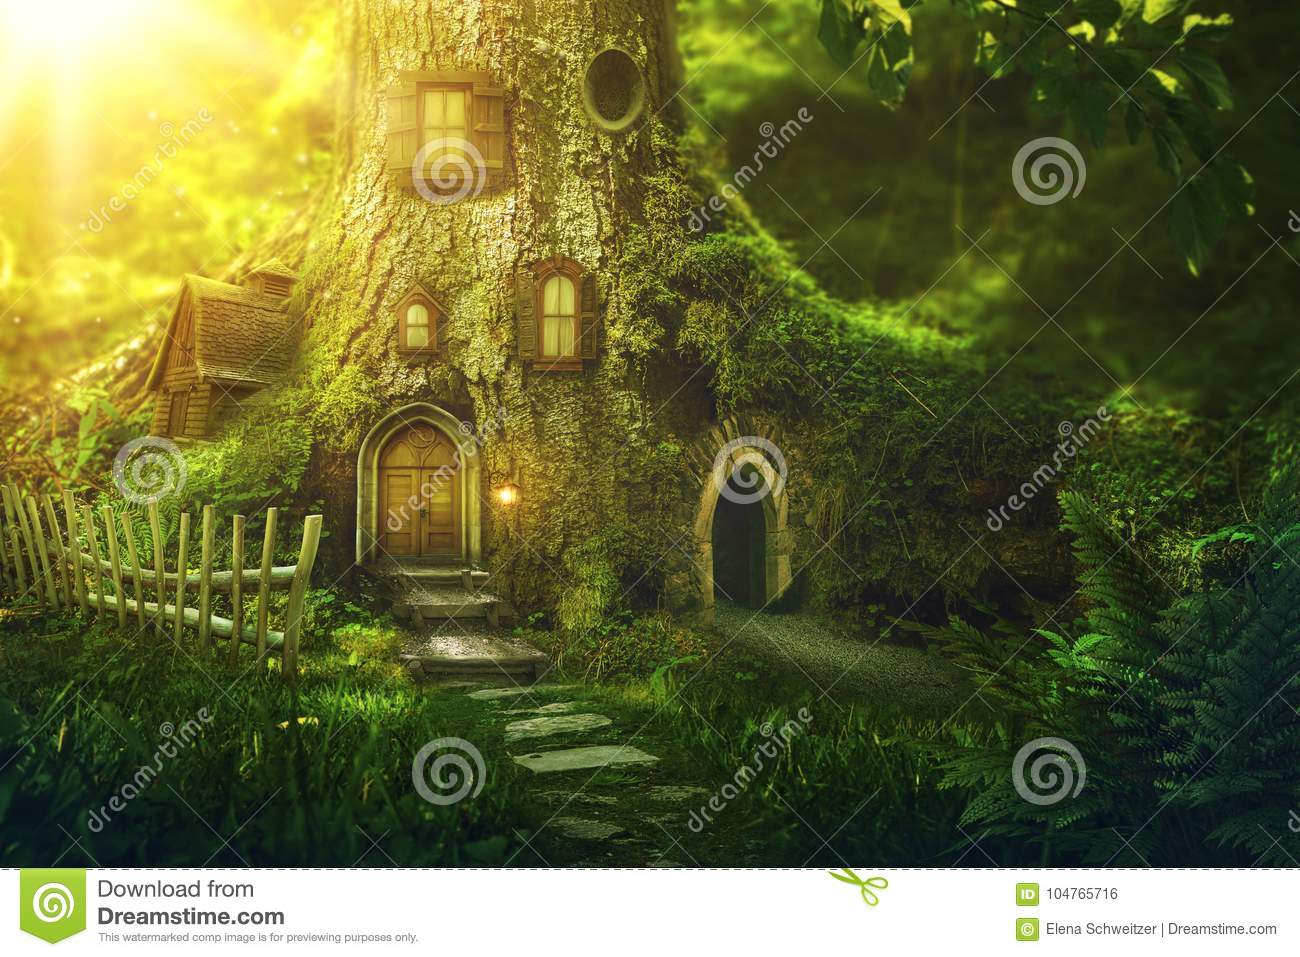 Download Fantasy tree house stock photo. Image of home, window - 104765716